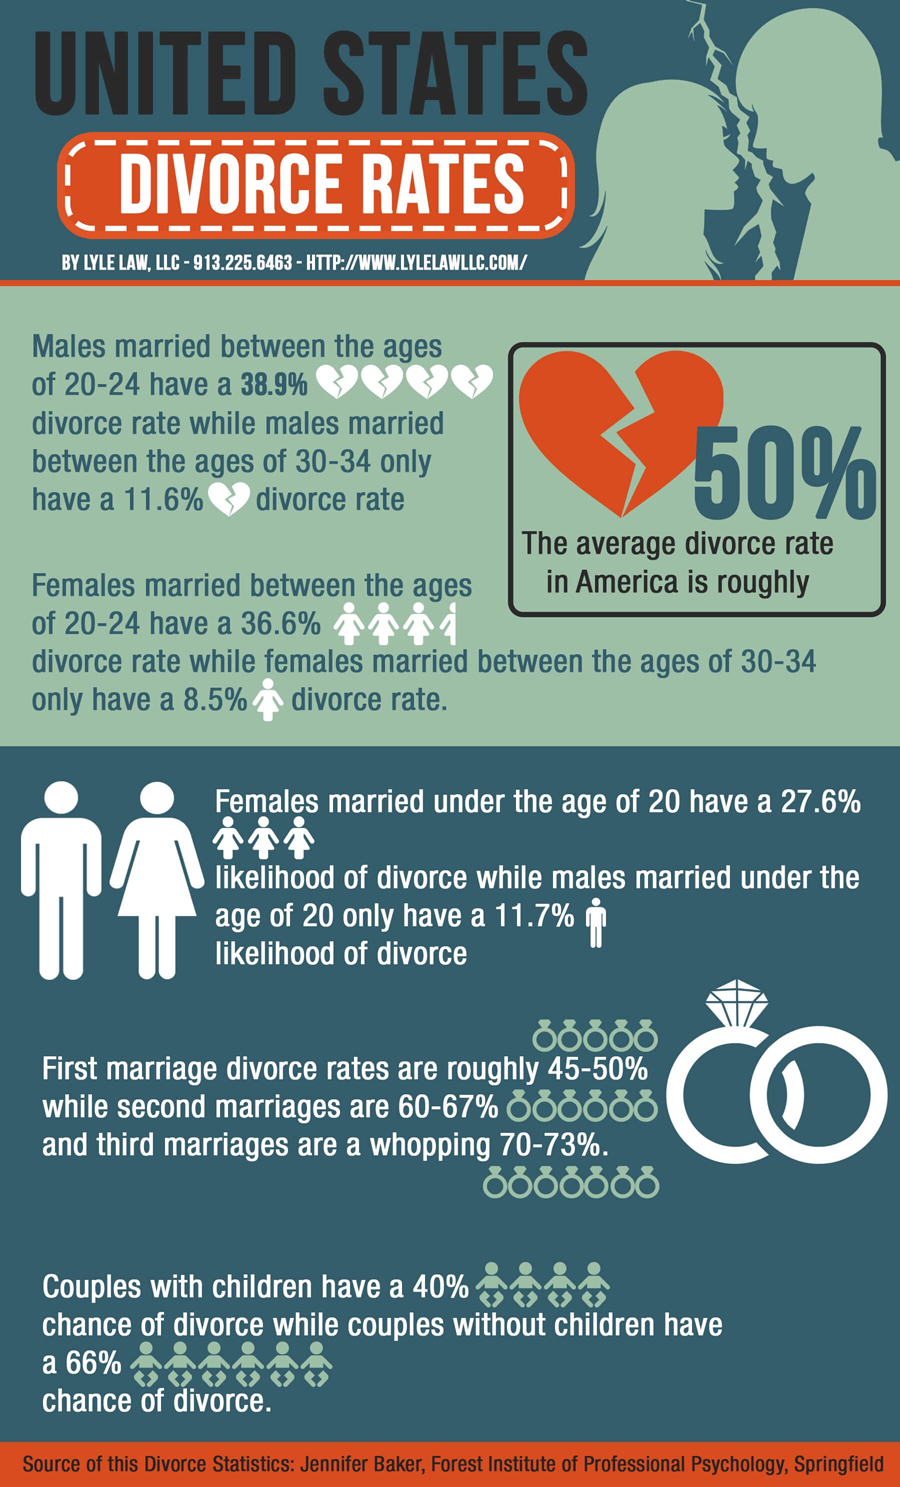 divorce-rates-in-kansas-city-infographic